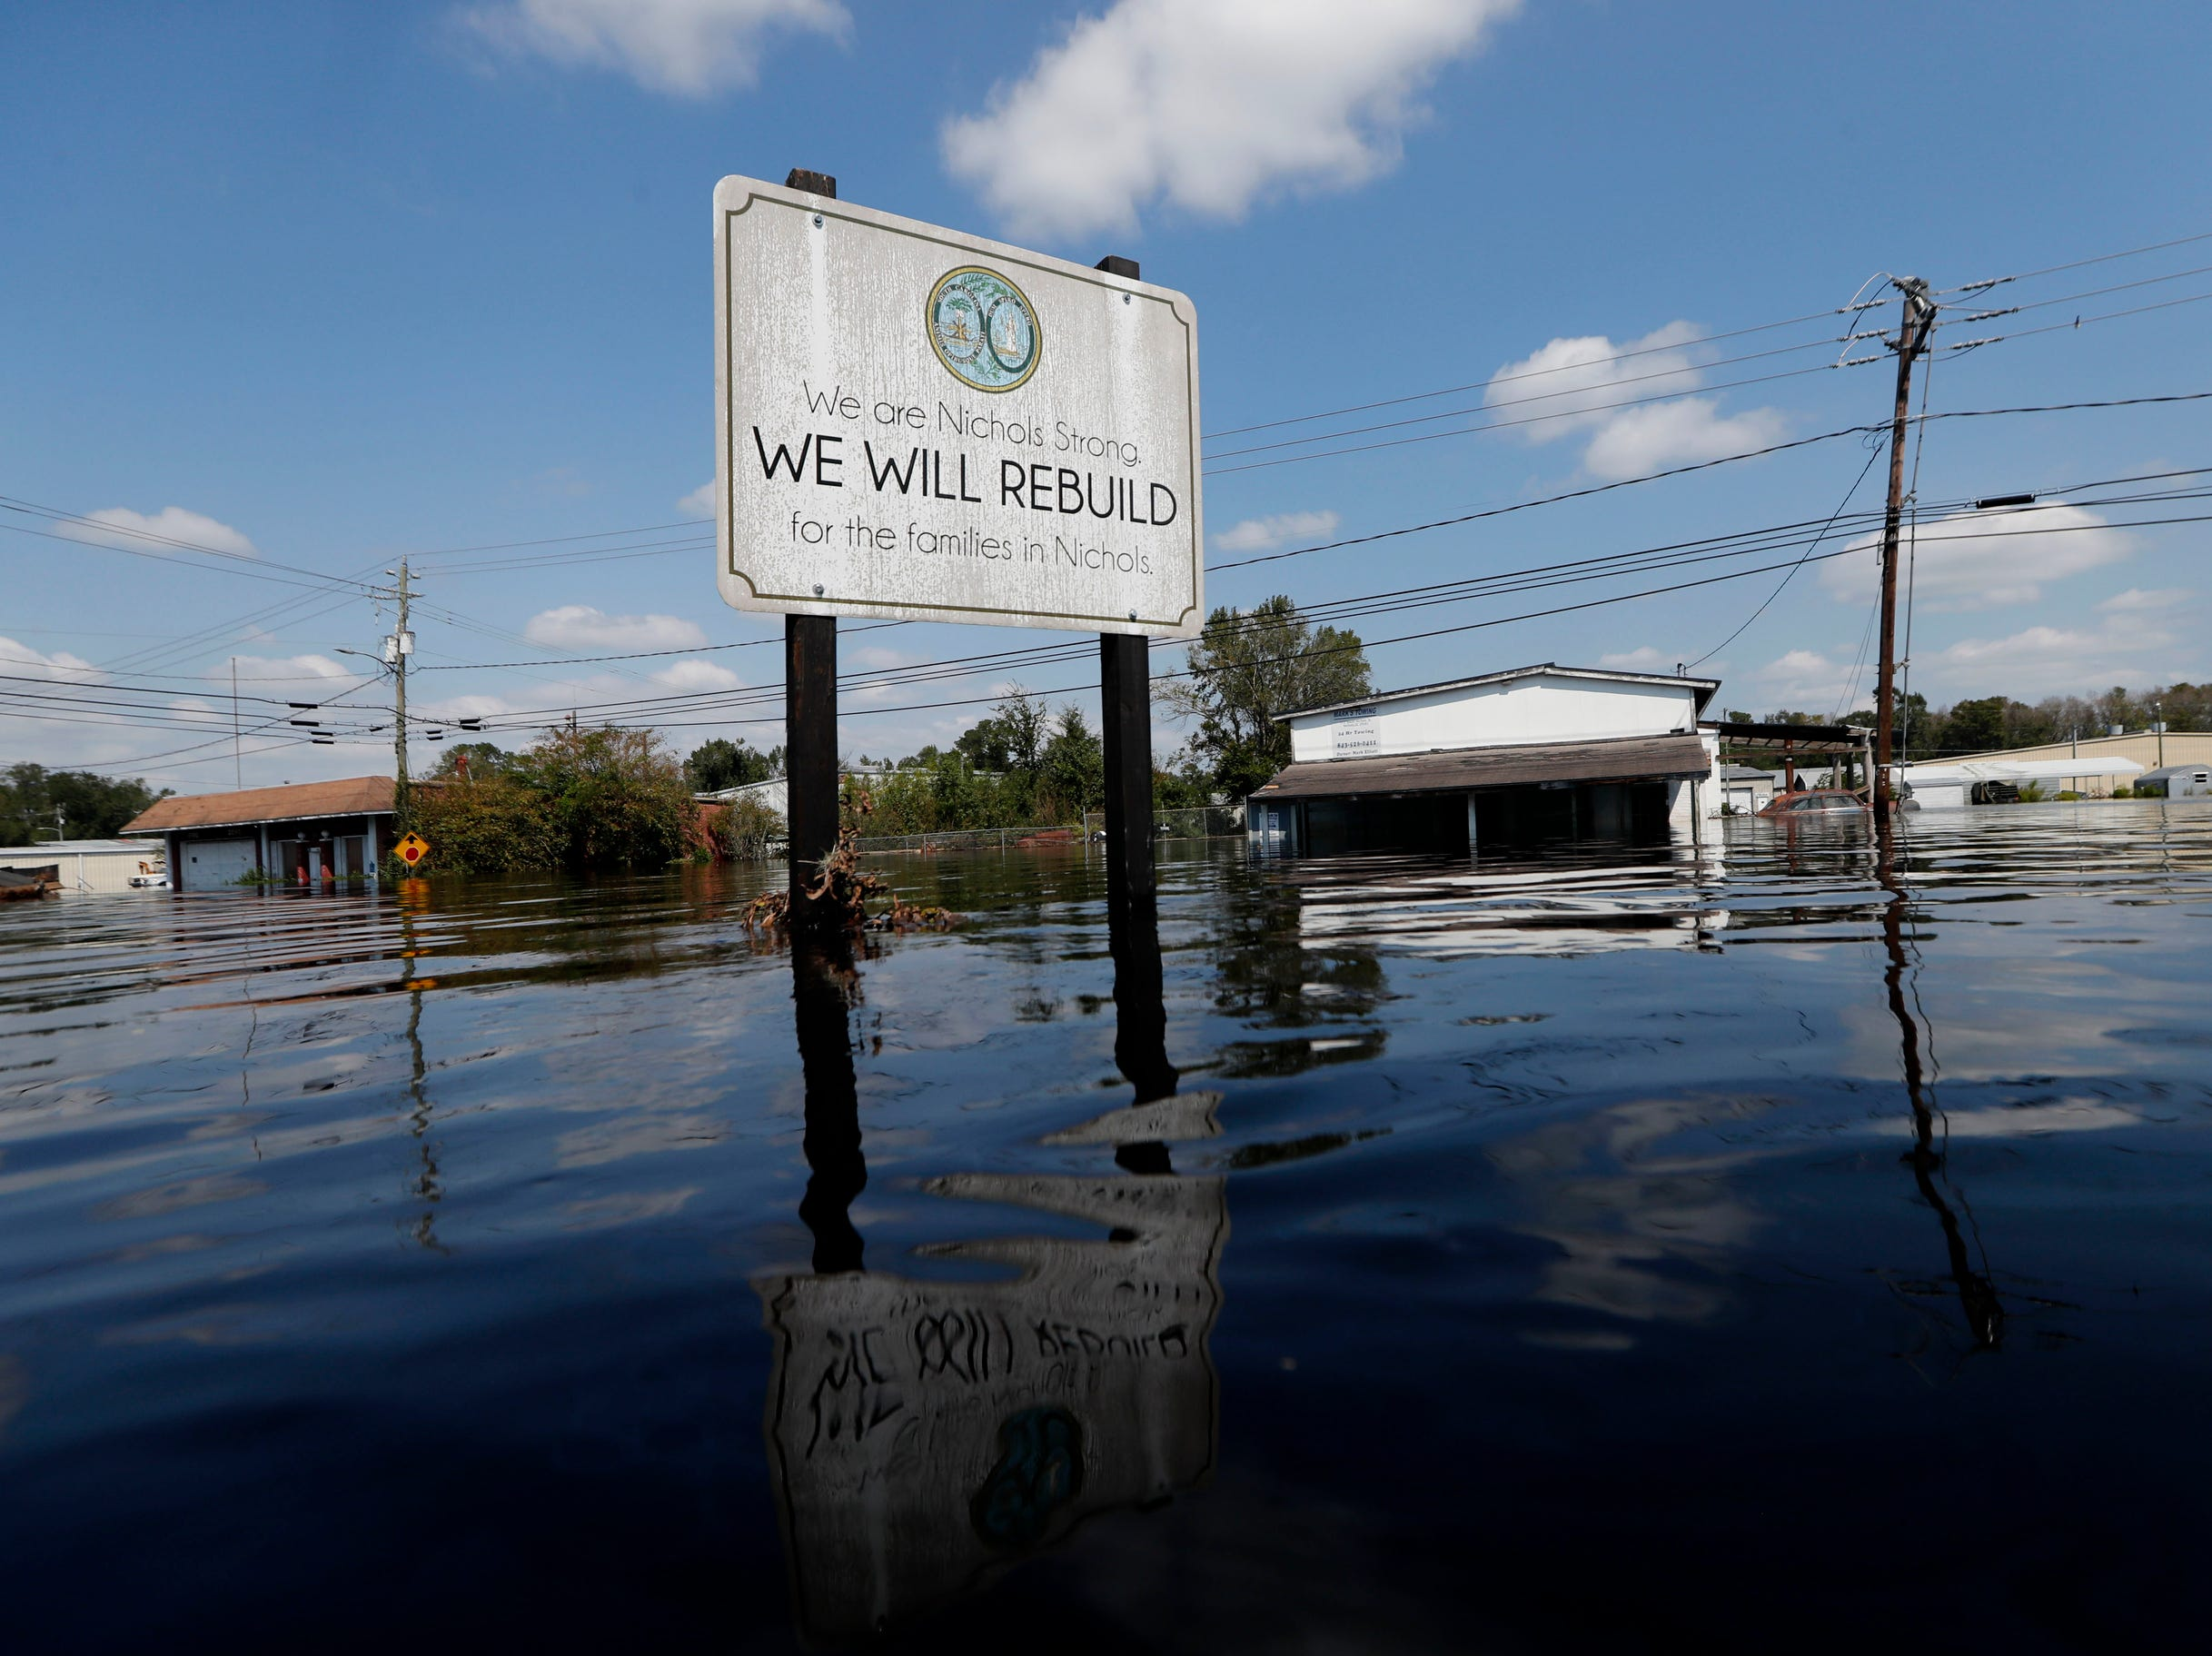 A sign commemorating the rebuilding of the town of Nichols, which was flooded two years earlier from Hurricane Matthew, stands in floodwaters in the aftermath of Hurricane Florence in Nichols, S.C., Friday. Virtually the entire town is once again flooded and inaccessible except by boat.